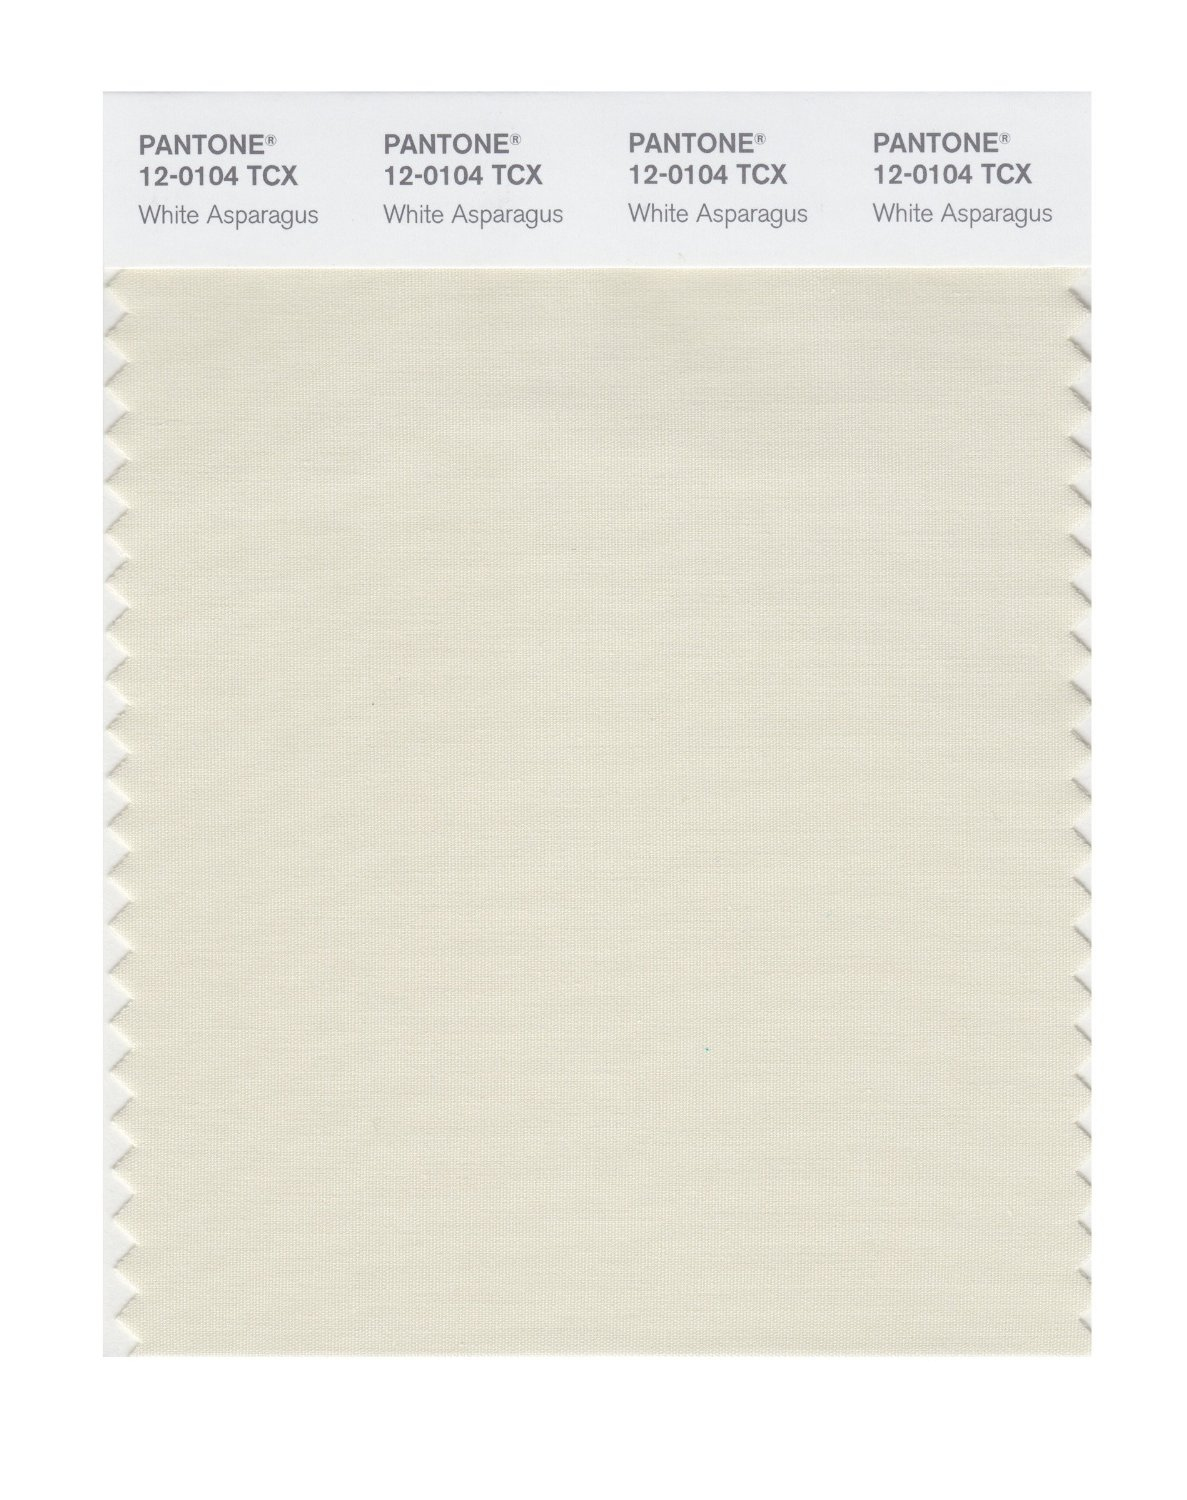 Pantone Smart Swatch 12-0104 White Asparagus